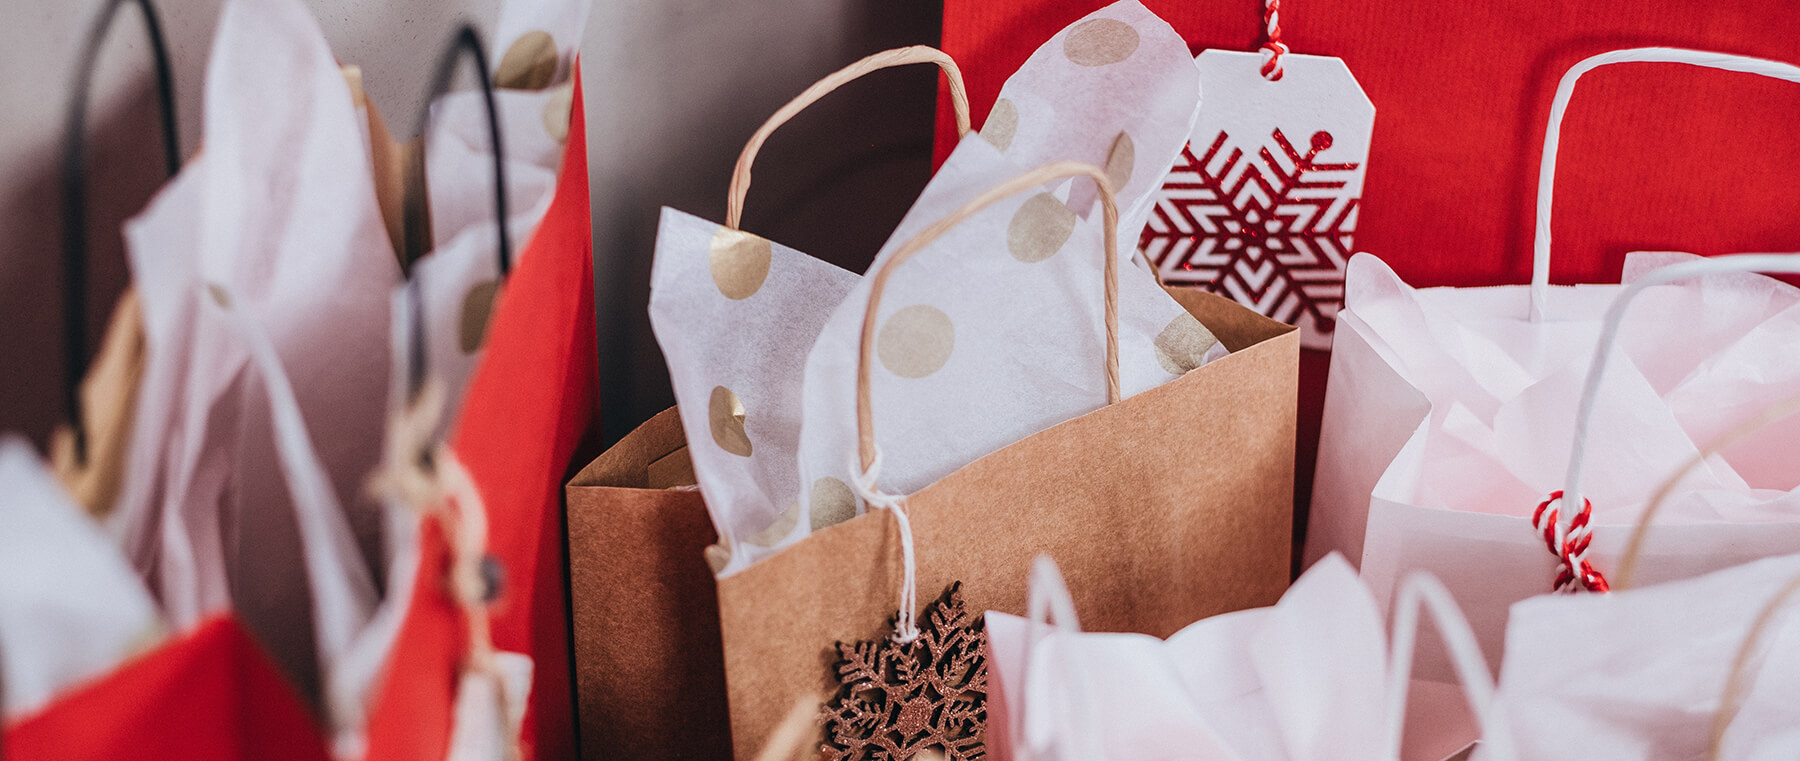 Bags with Christmas gifts and decorations